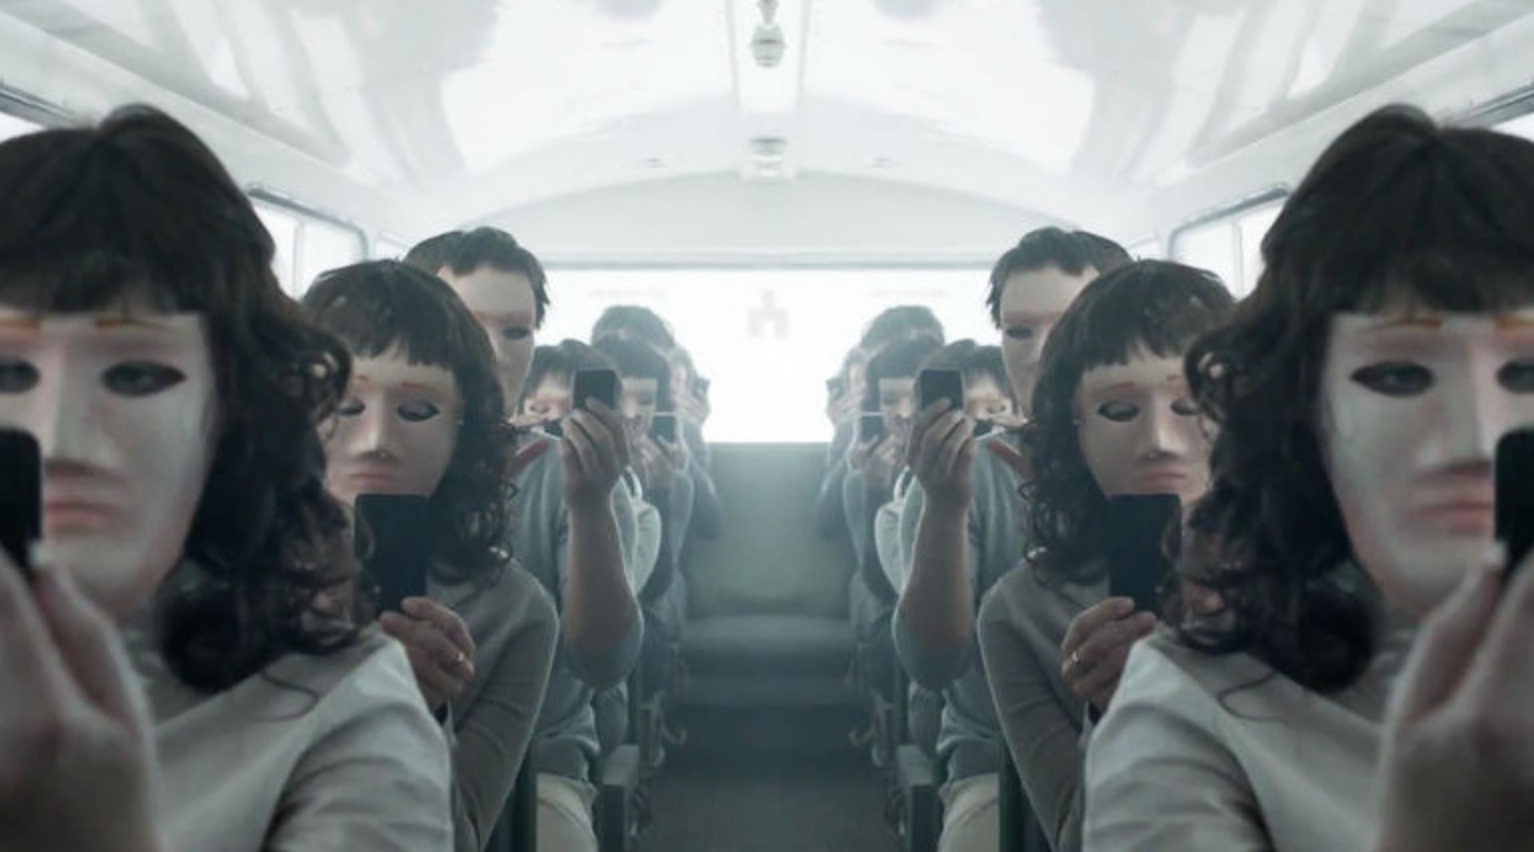 An image of men and women on a bus wearing masks and looking at their phones